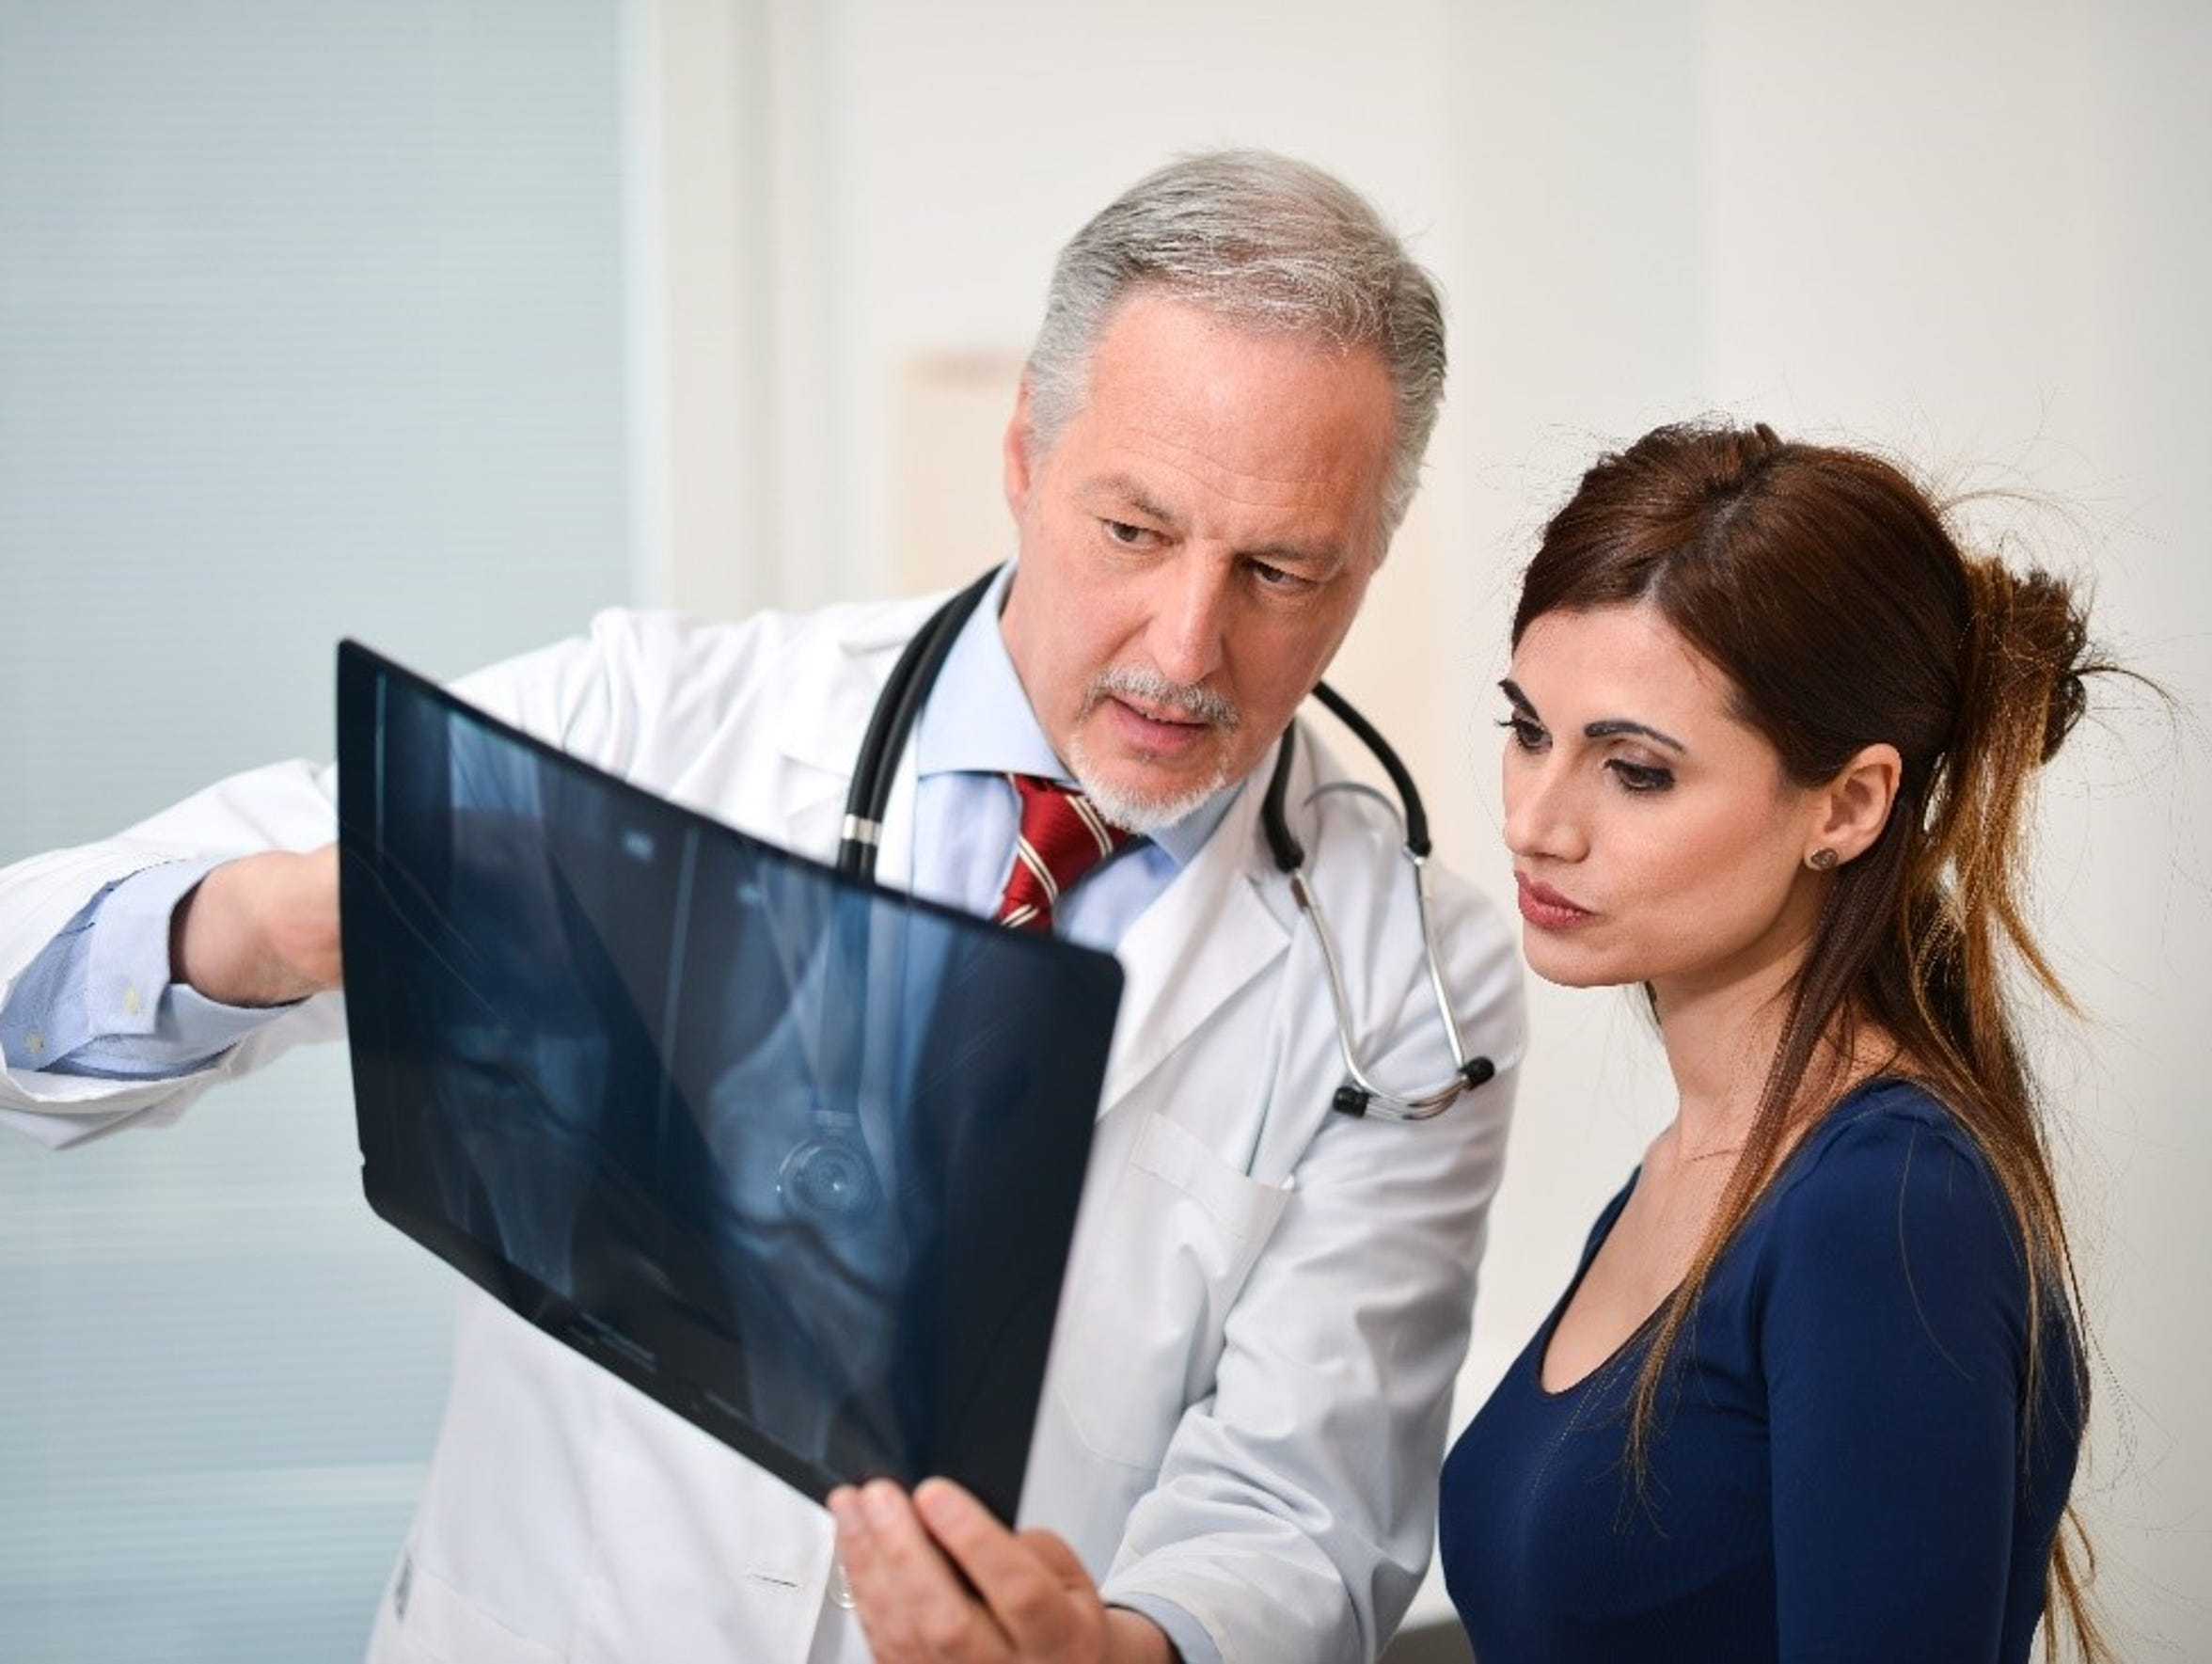 Doctors can review your symptoms and medical history